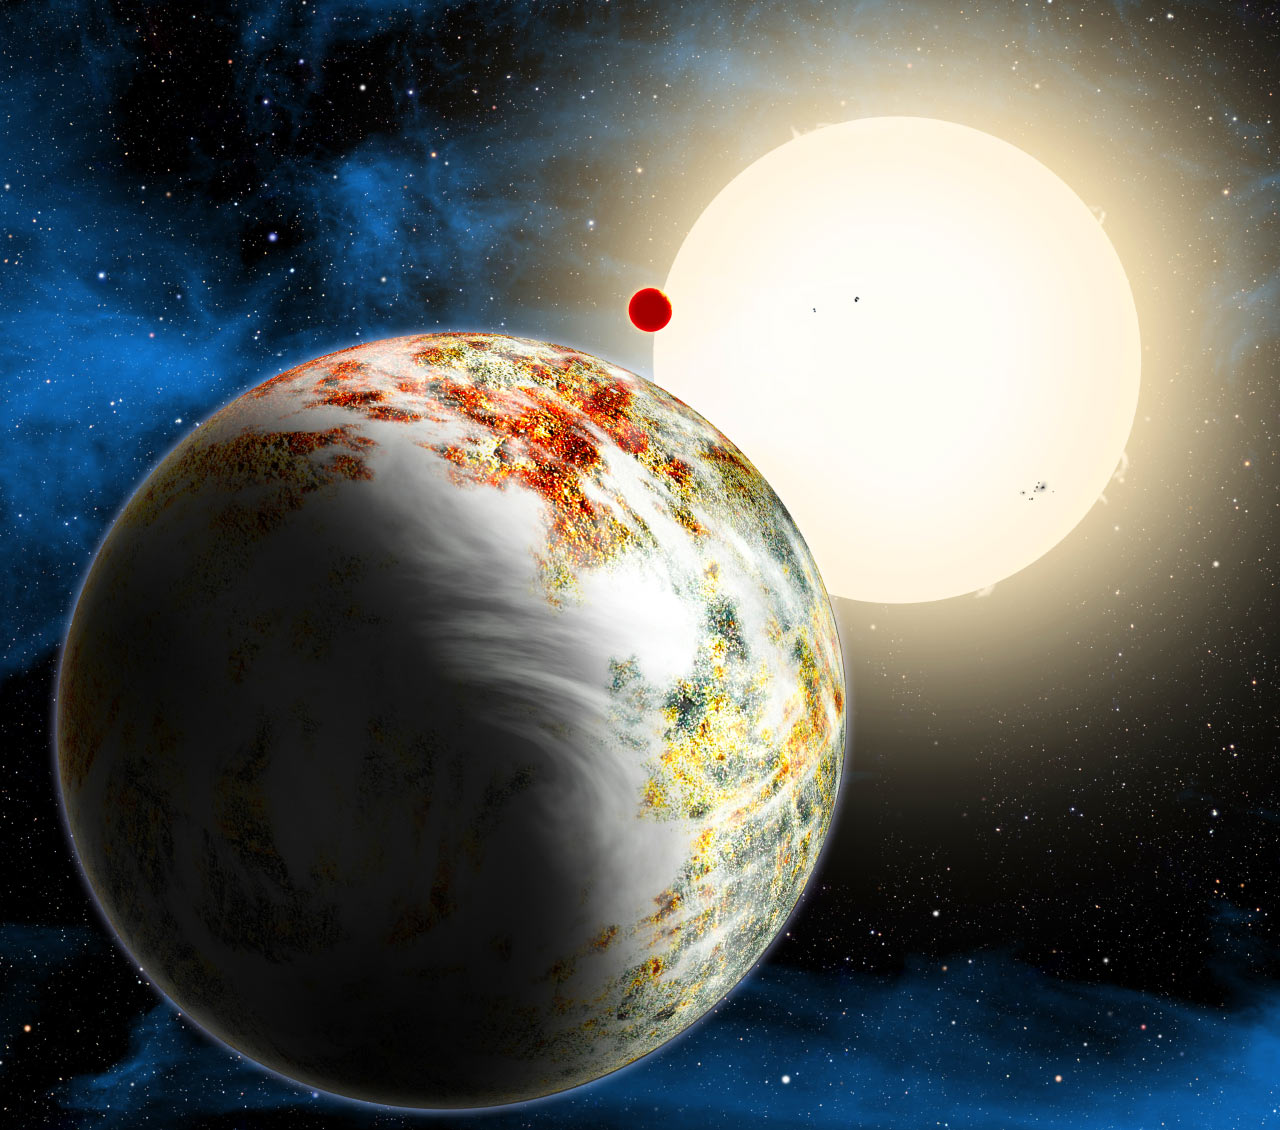 Kepler-10c: Astronomers have Discovered a Mega-Earth